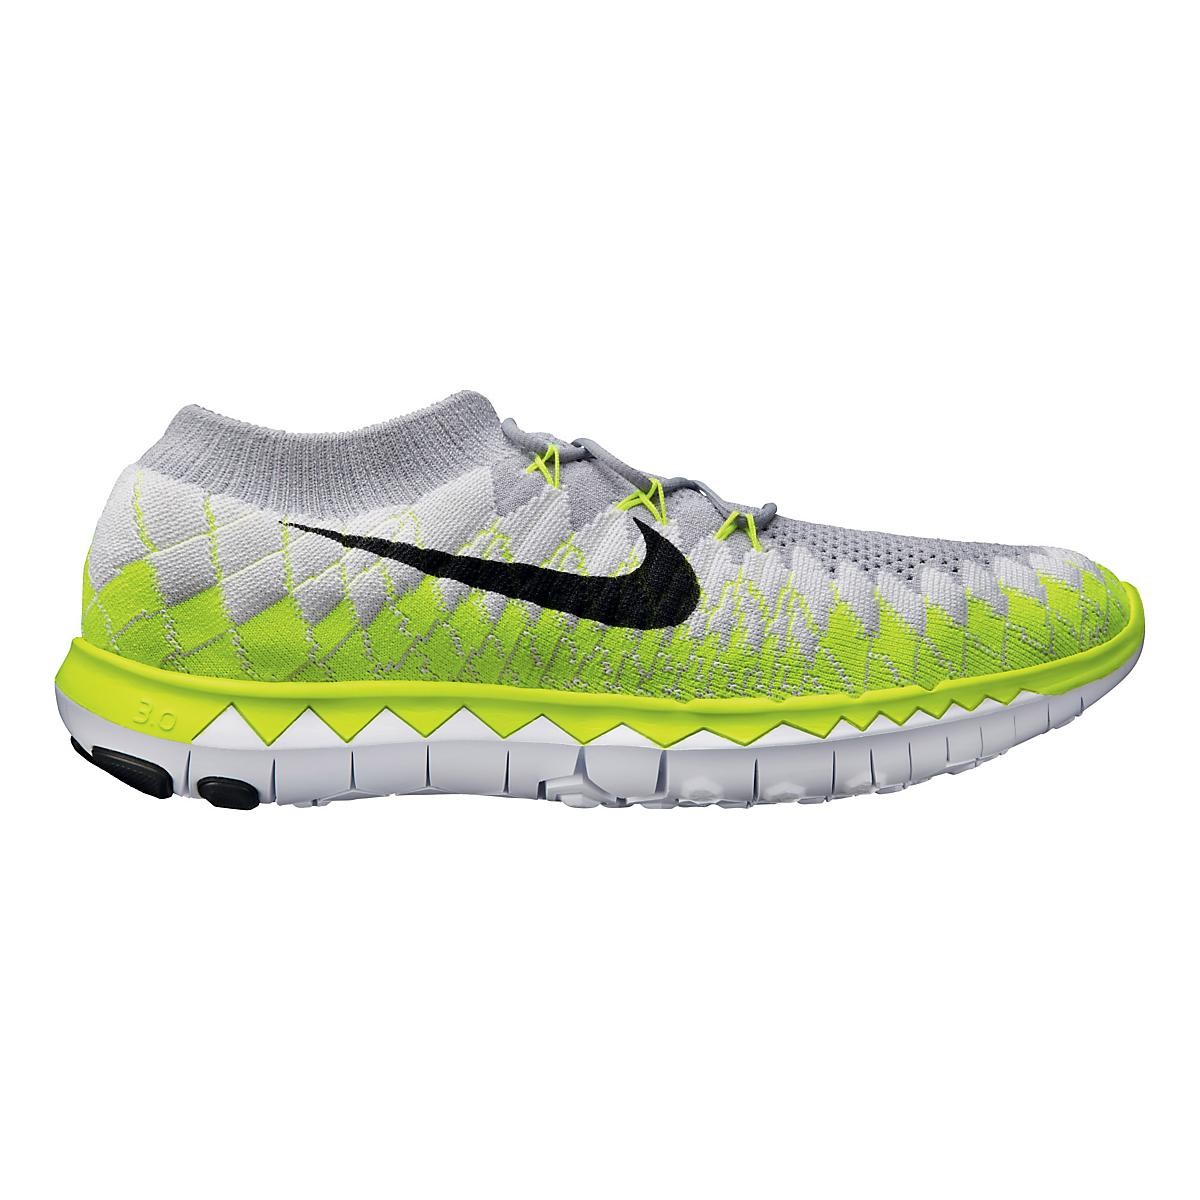 64976255 Mens Nike Free 3.0 Flyknit Running Shoe at Road Runner Sports